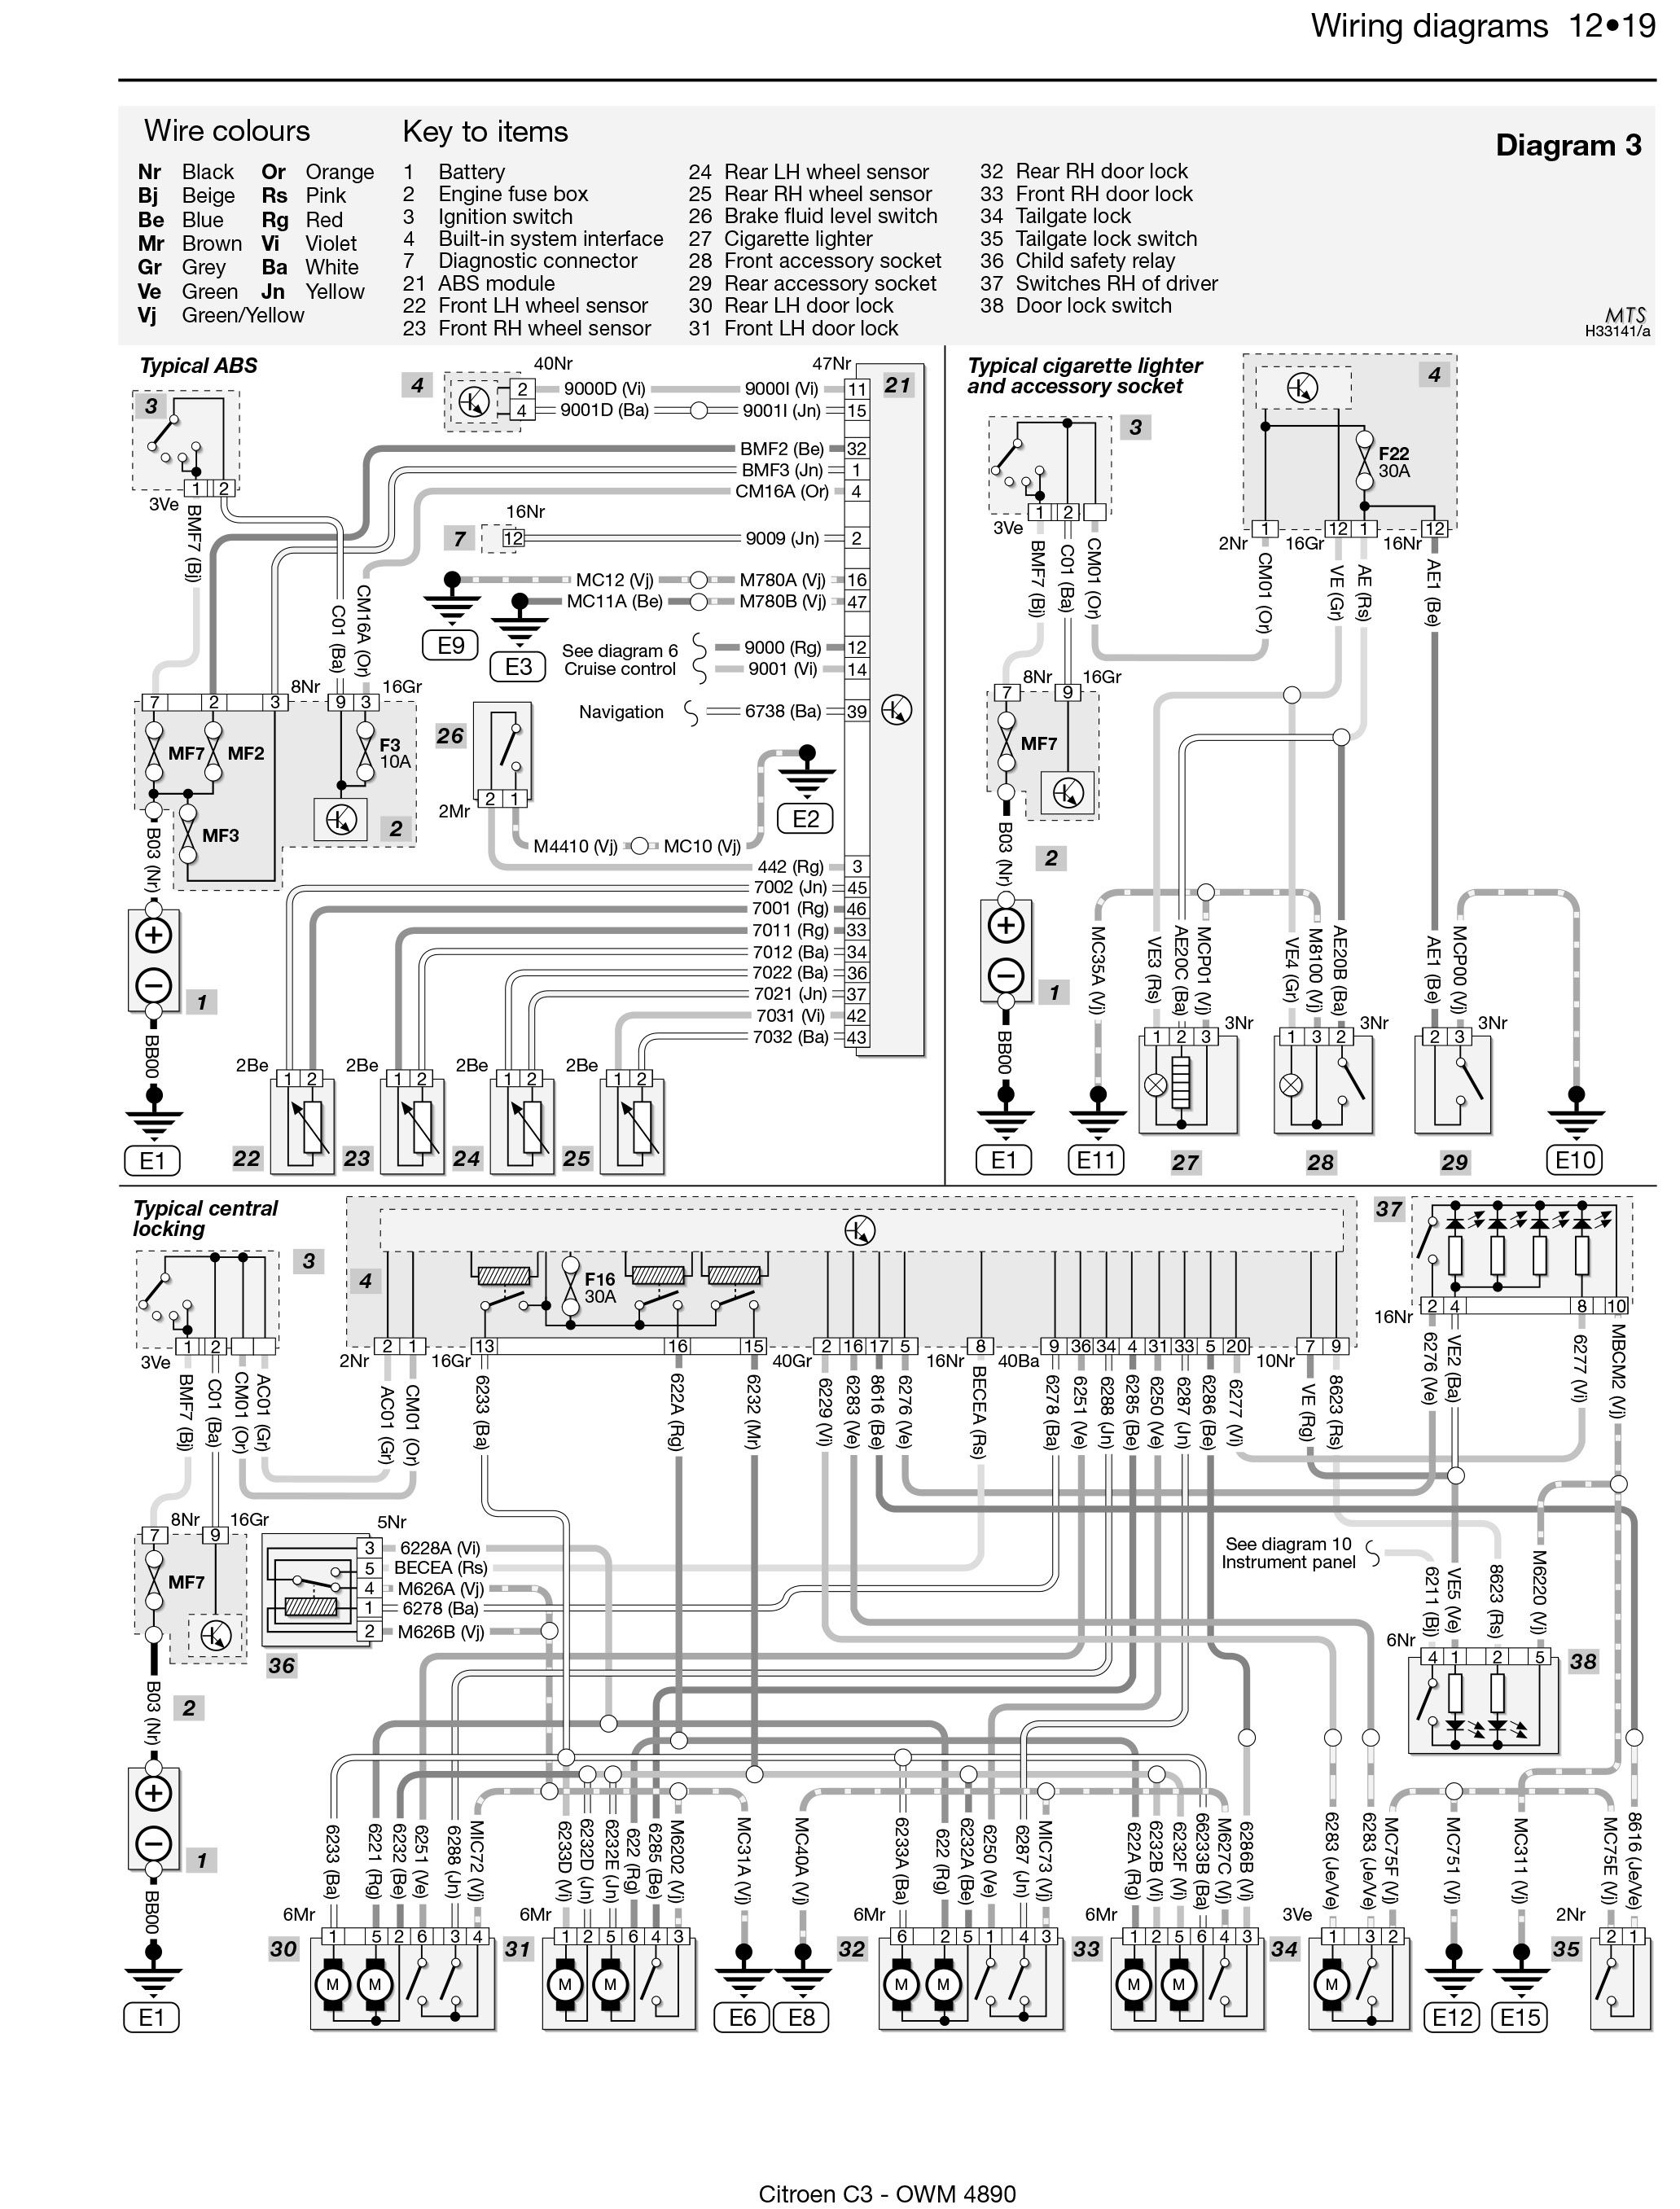 20 Good Haynes Wiring Diagram Legend Ideas